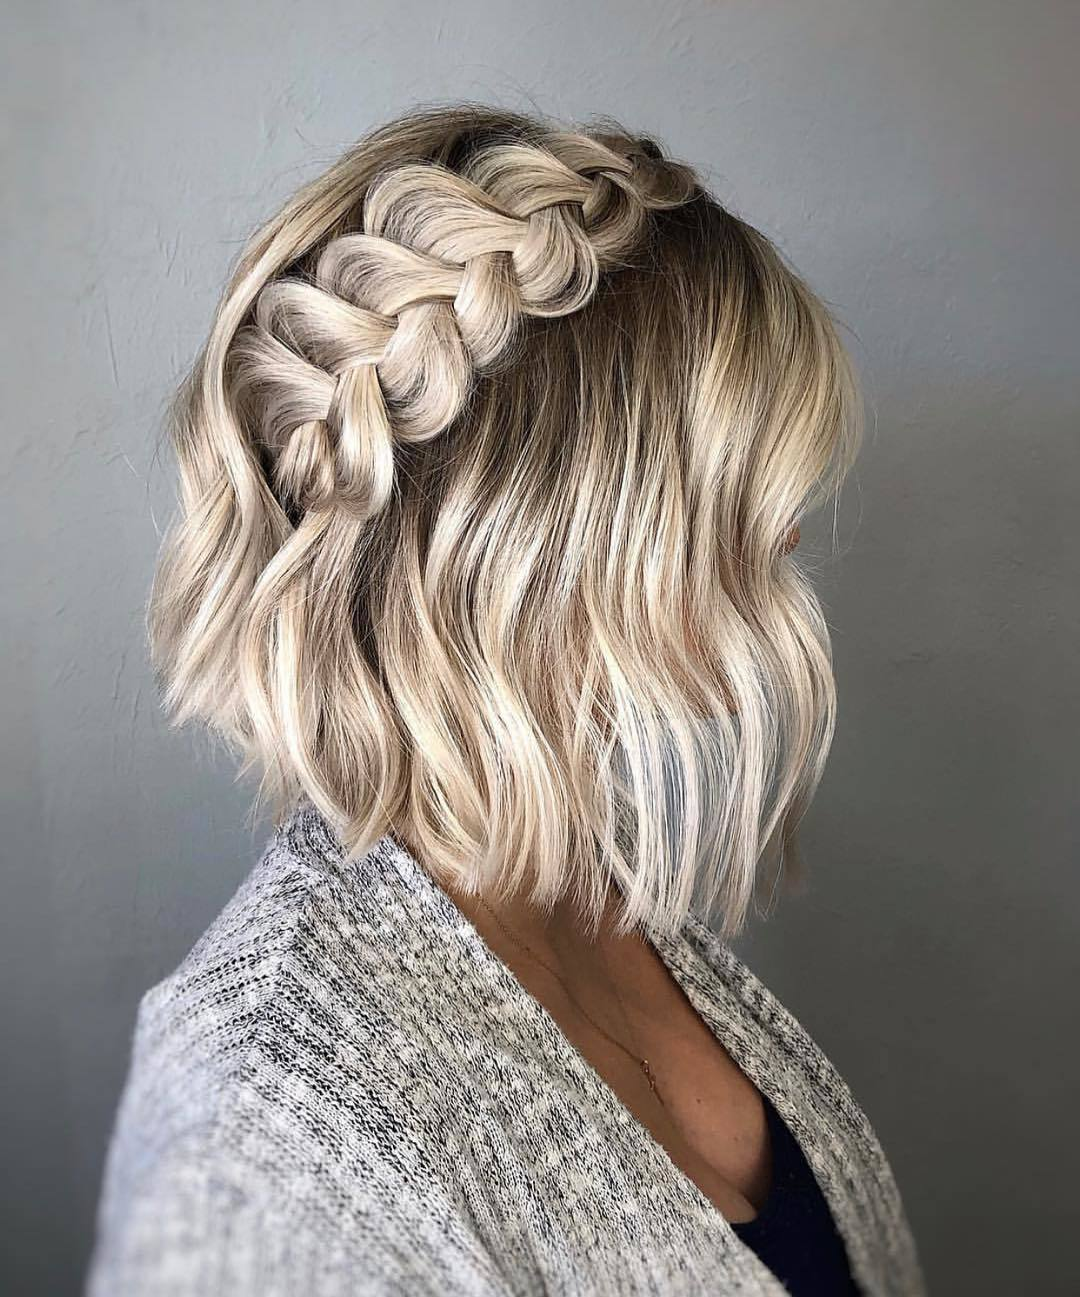 Short wedding hair ideas: Woman with short wavy bronde bob styled into a pinned Dutch braid, posing in a studio